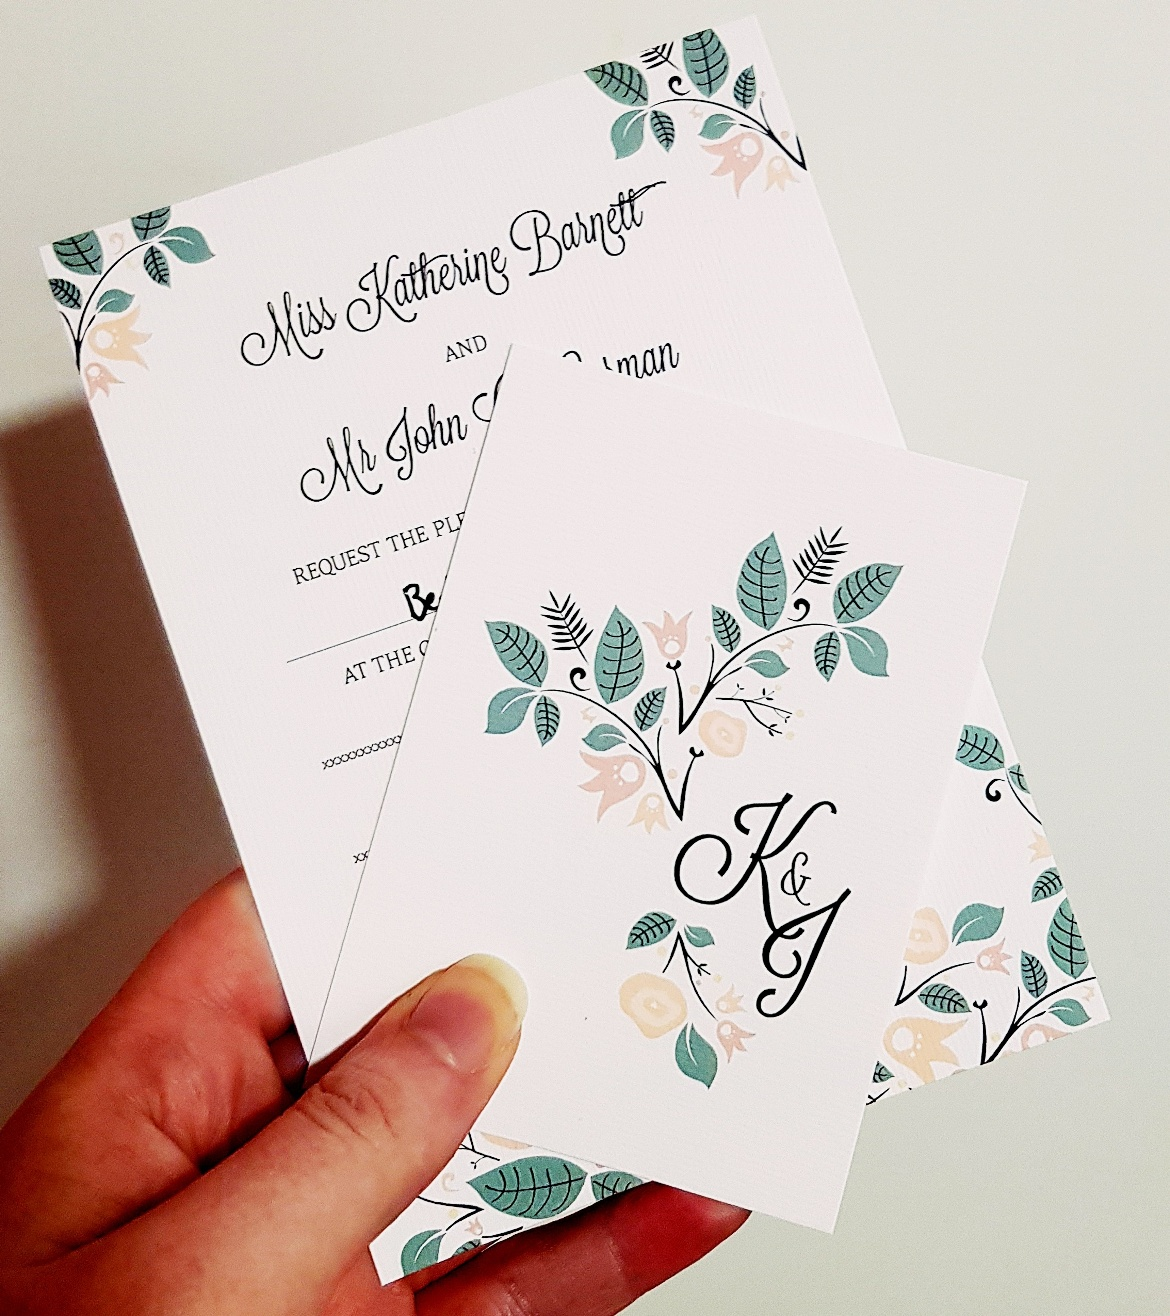 Wedding invite - January 2018 Monthly Recap by BeckyBecky Blogs